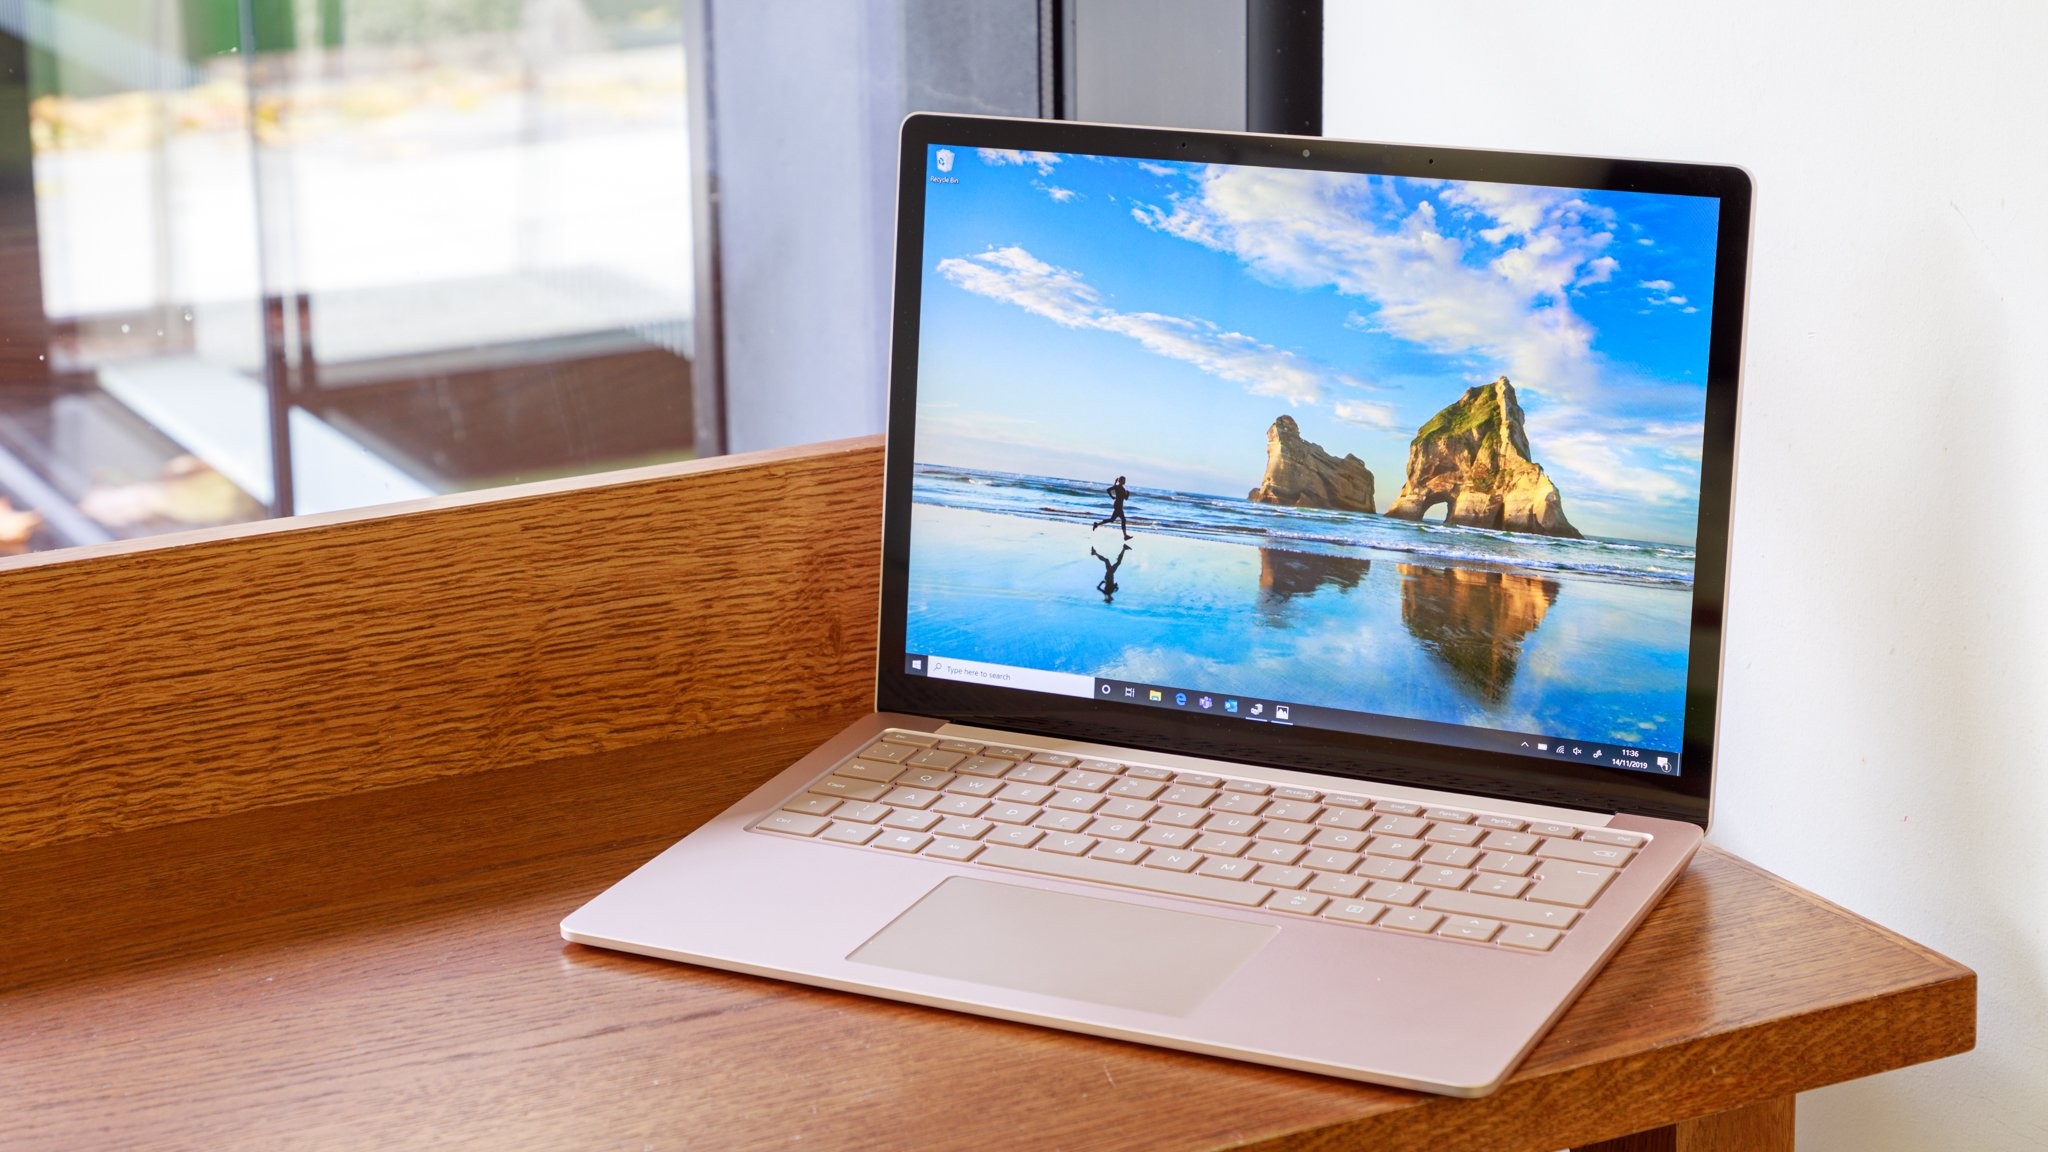 Microsoft Surface Laptop 3 13 5in Review Black Friday Savings Of Up To 200 On This Superb Laptop Expert Reviews